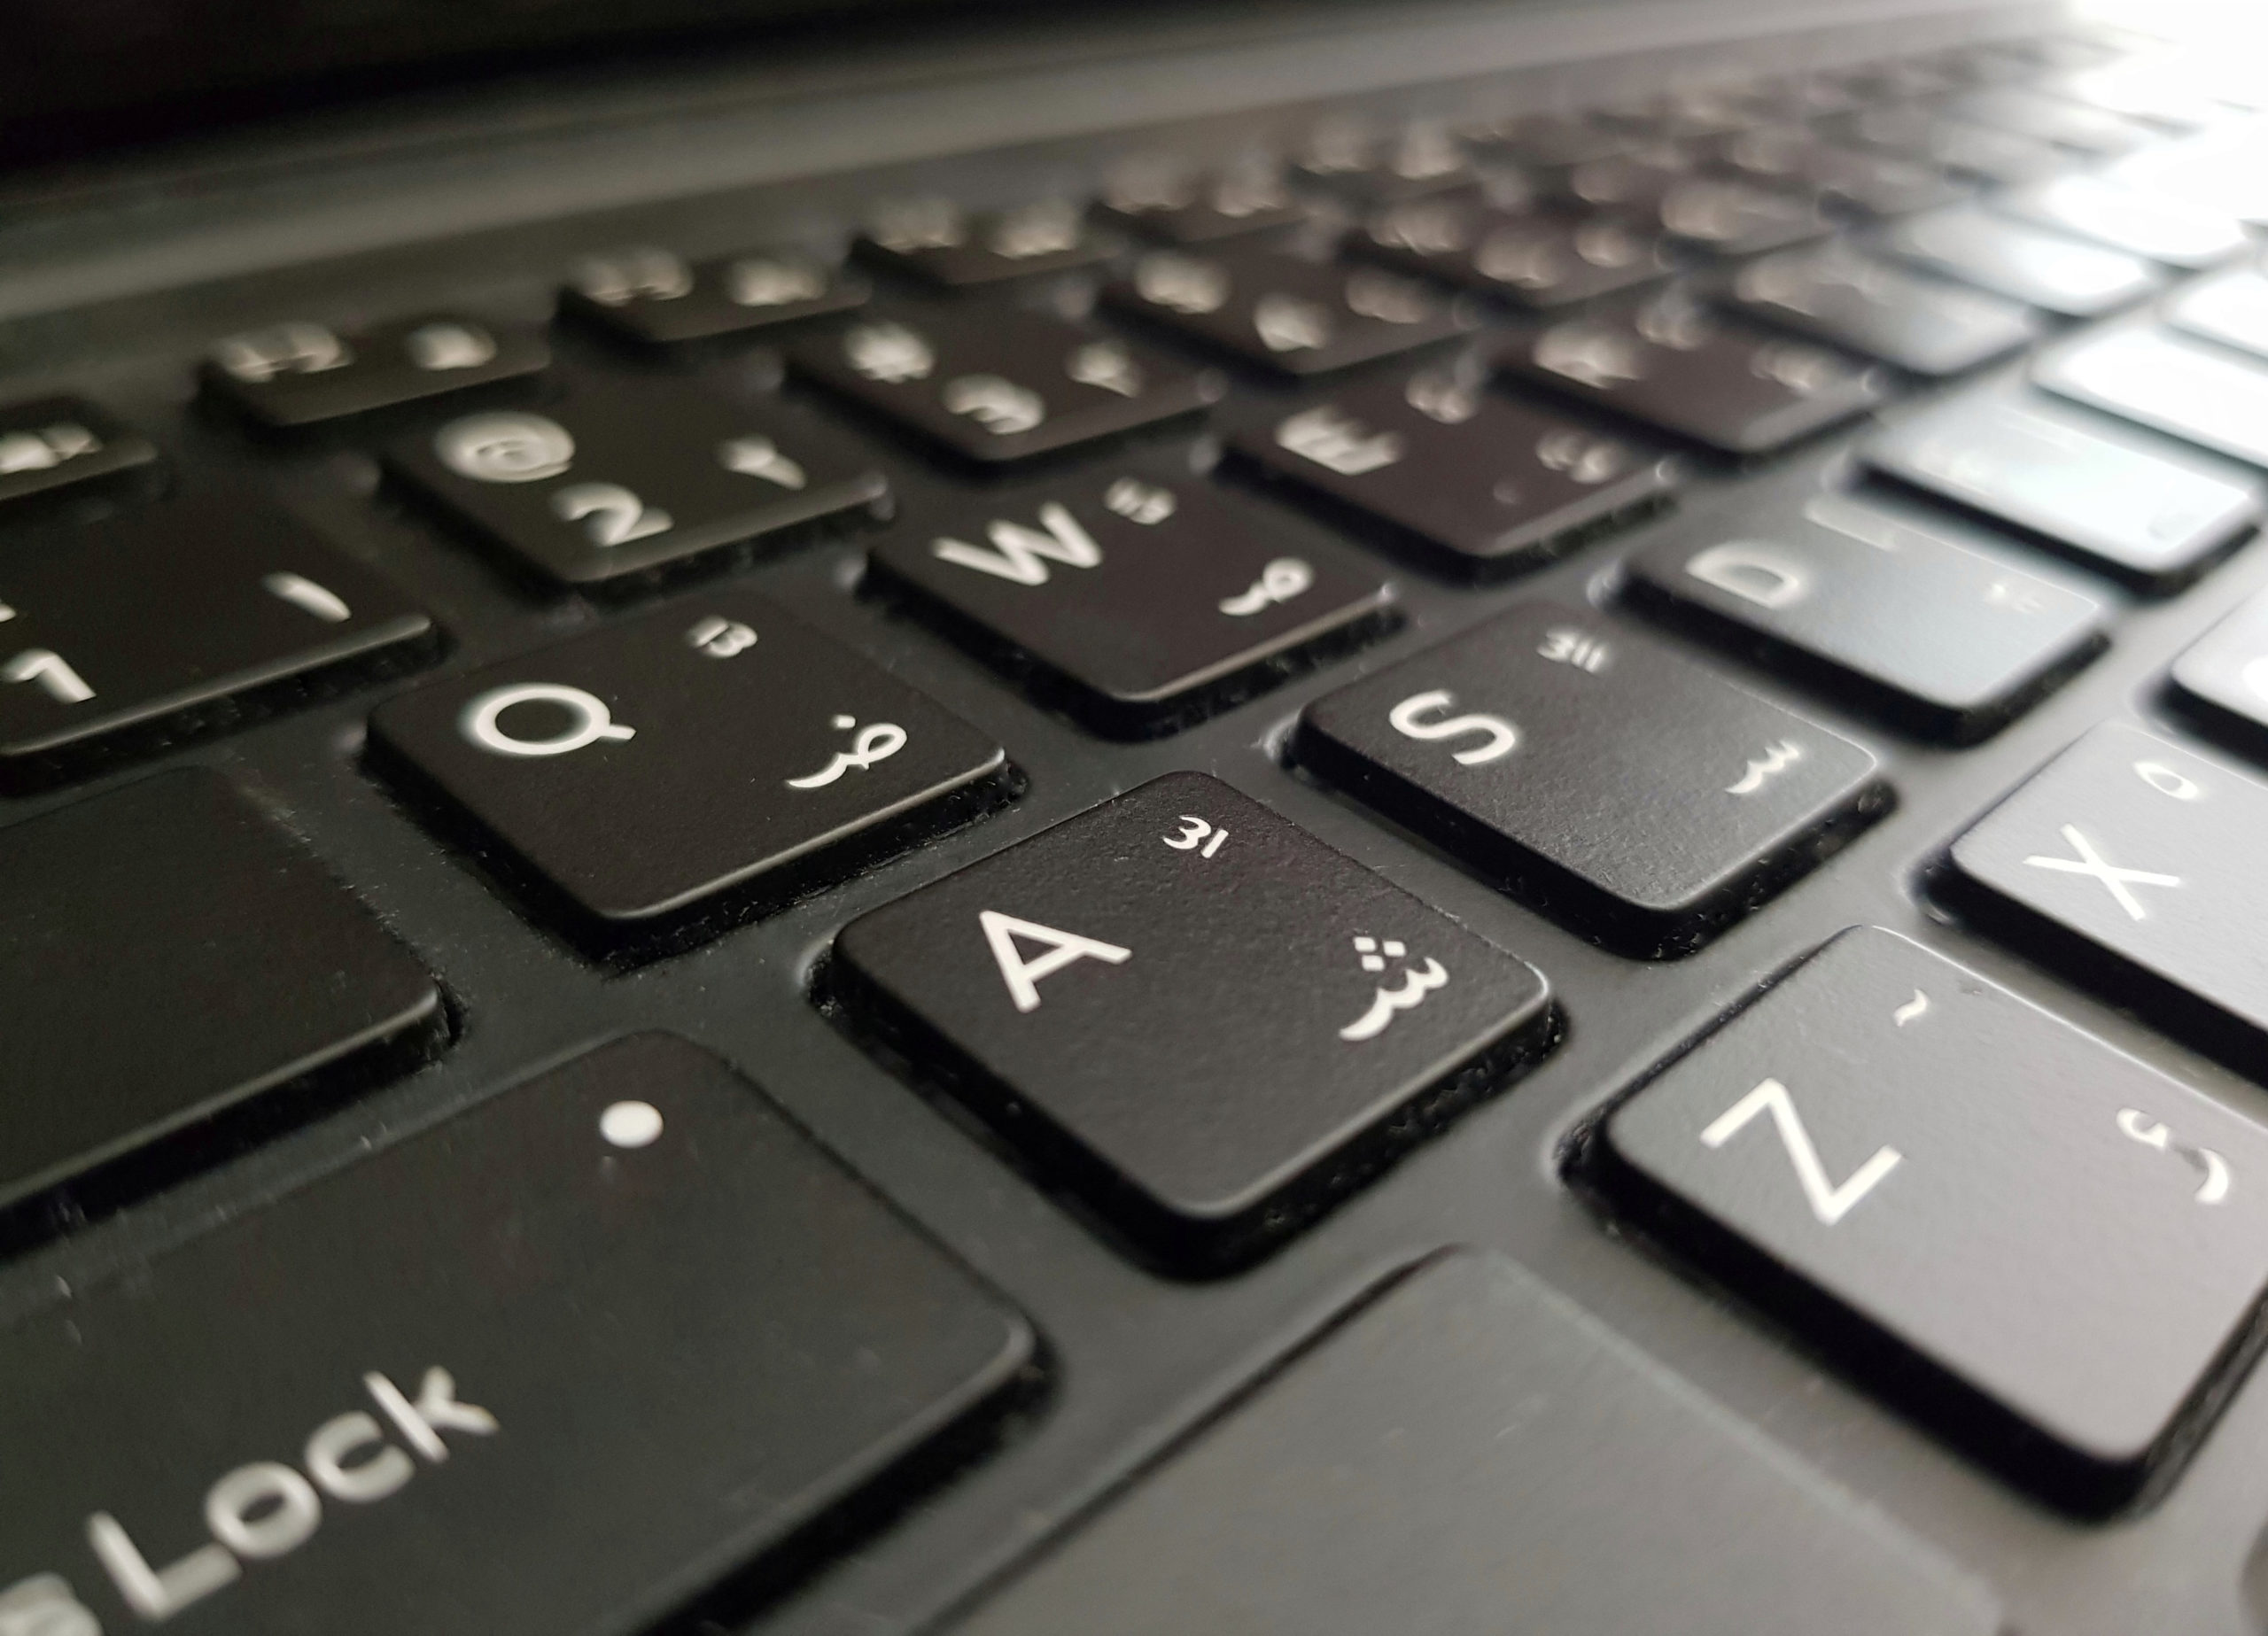 If you haven't thought about using an Arabic keyboard, now might be the time. Kaleela tells you all about it in this article.